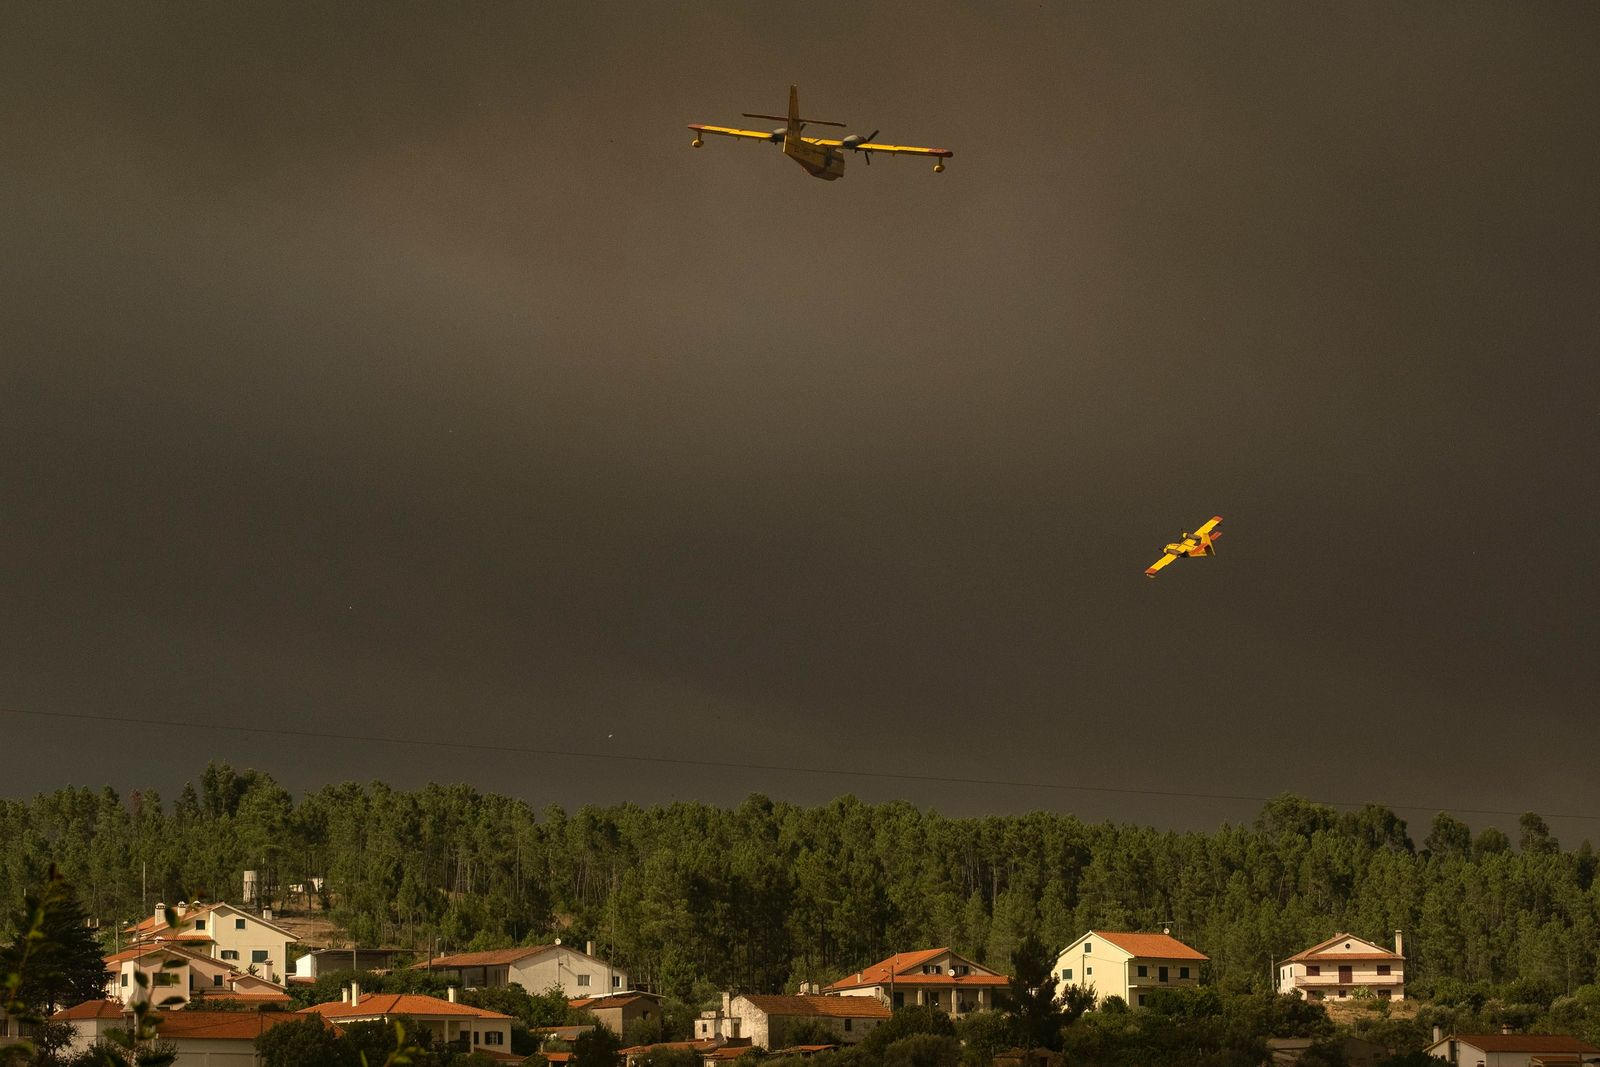 Airplanes operate over a fire at the village of Chaveira, near Macao, in central Portugal on Monday, July 22, 2019. More than 1,000 firefighters are battling a major wildfire amid scorching temperatures in Portugal, where forest blazes wreak destruction every summer. About 90% of the fire area in the Castelo Branco district, 200 kilometers (about 125 miles) northeast of the capital Lisbon, has been brought under control during cooler overnight temperatures, according to a local Civil Protection Agency commander. (AP Photo/Sergio Azenha)